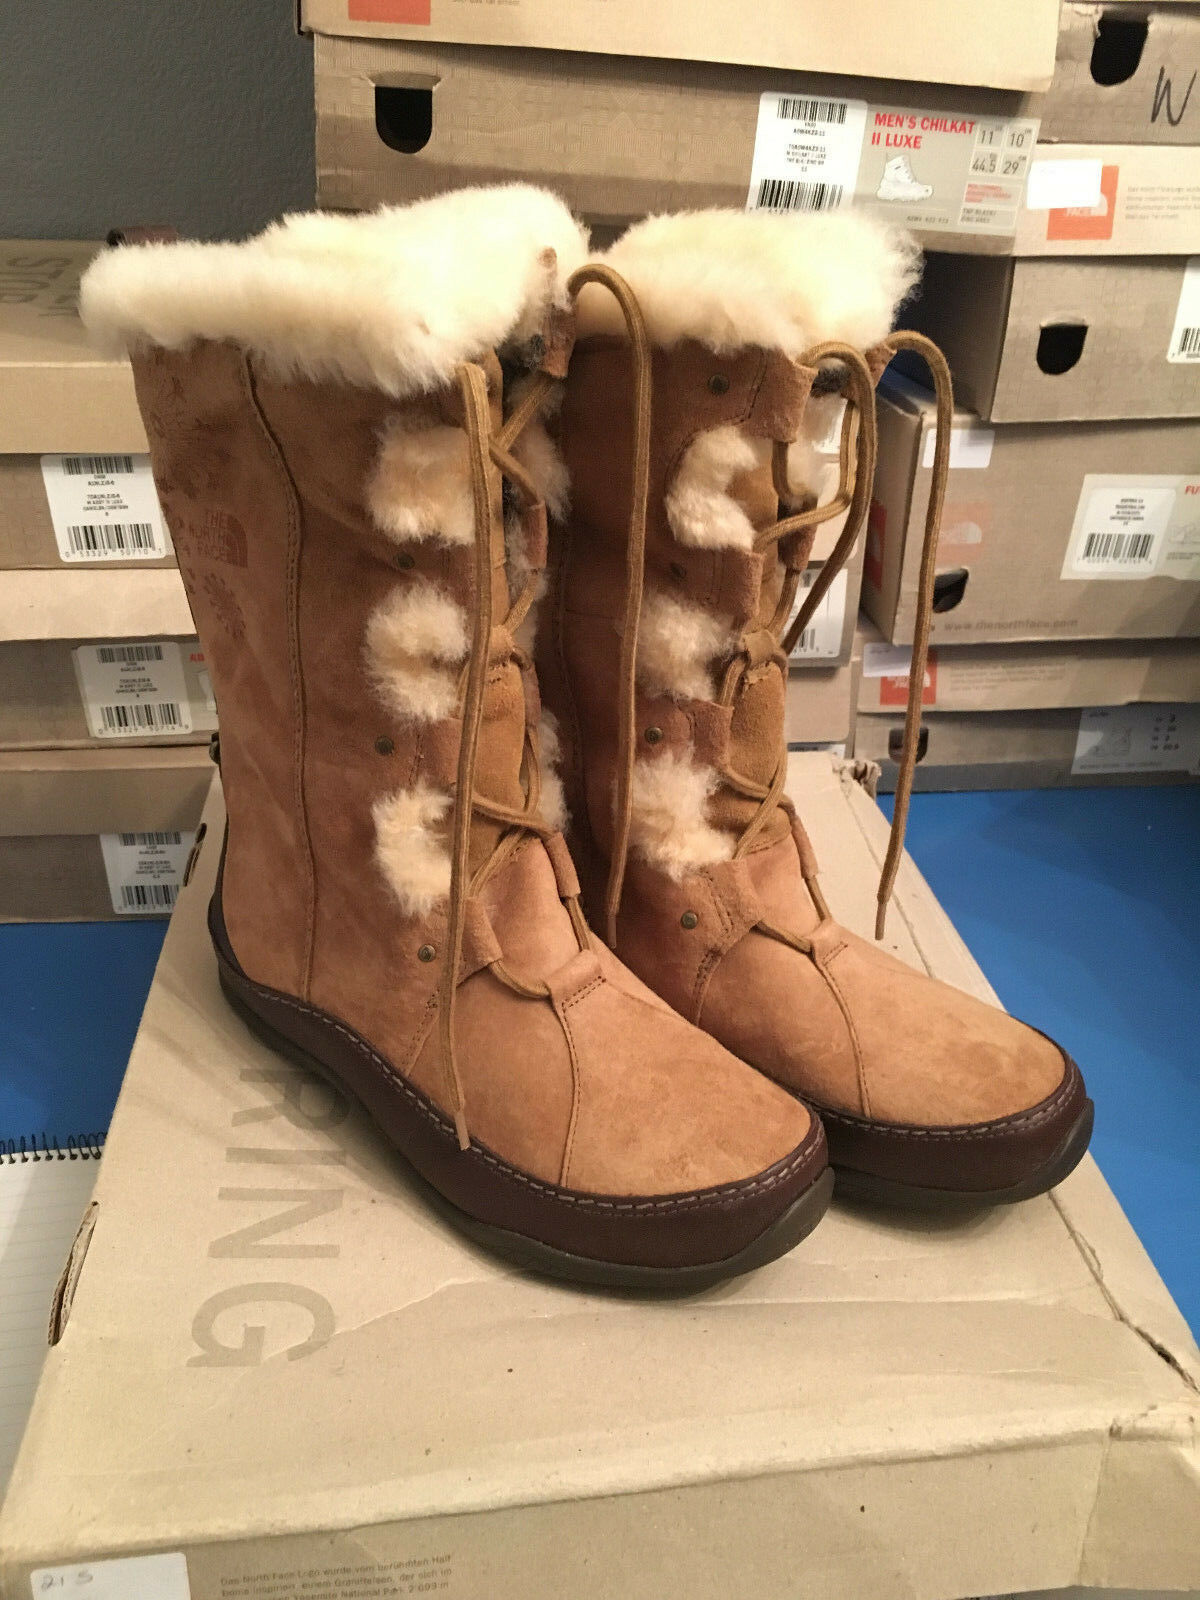 The North III Face, Abby III North Boot, Rope Brown, Sizes 4.5,7,7.5, New in Box 336749